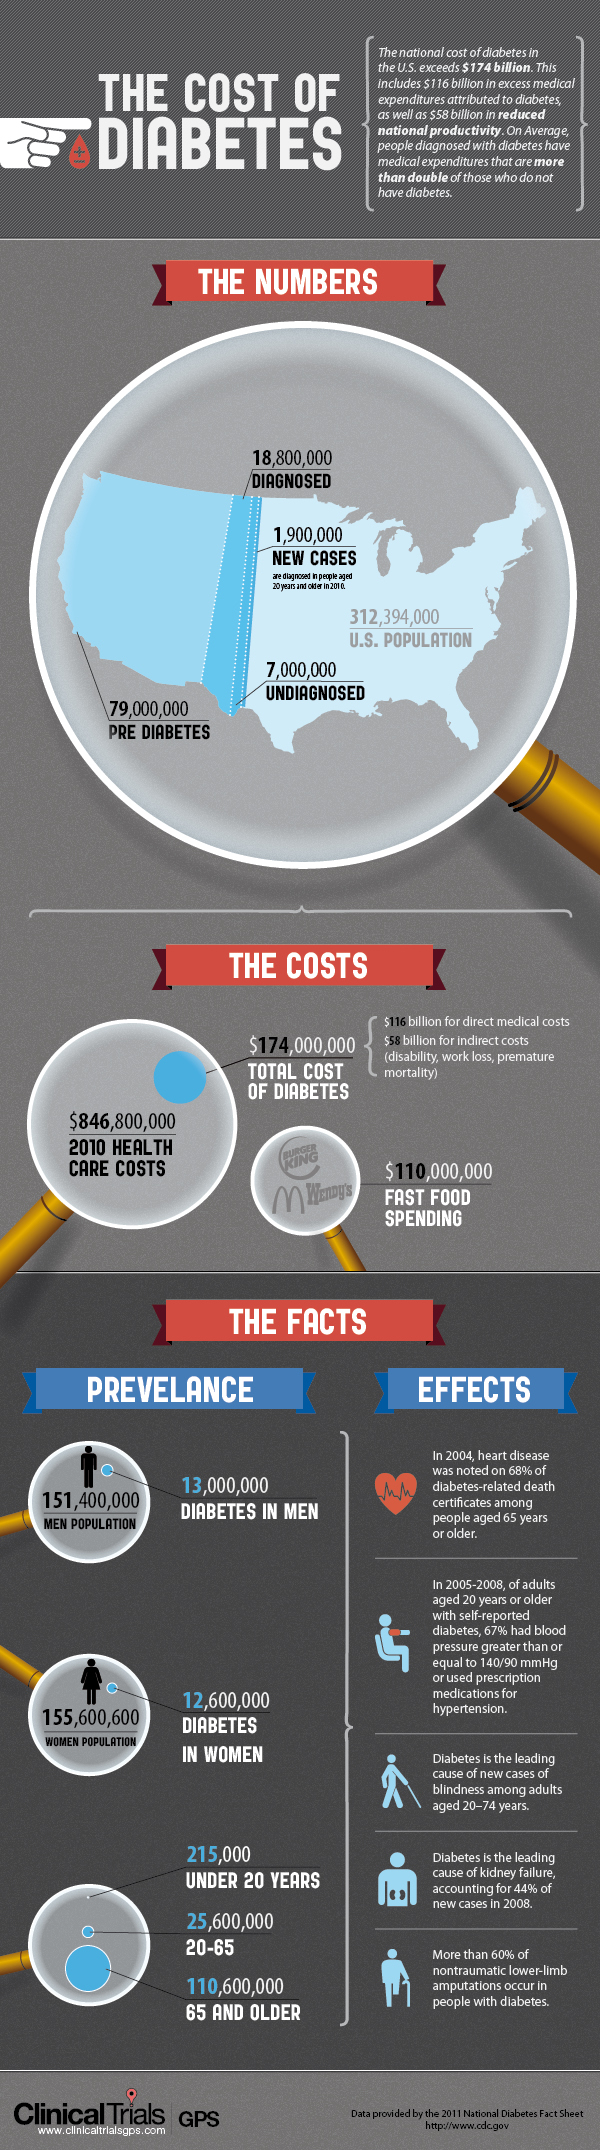 What is the Cost of Diabetes to the Nation